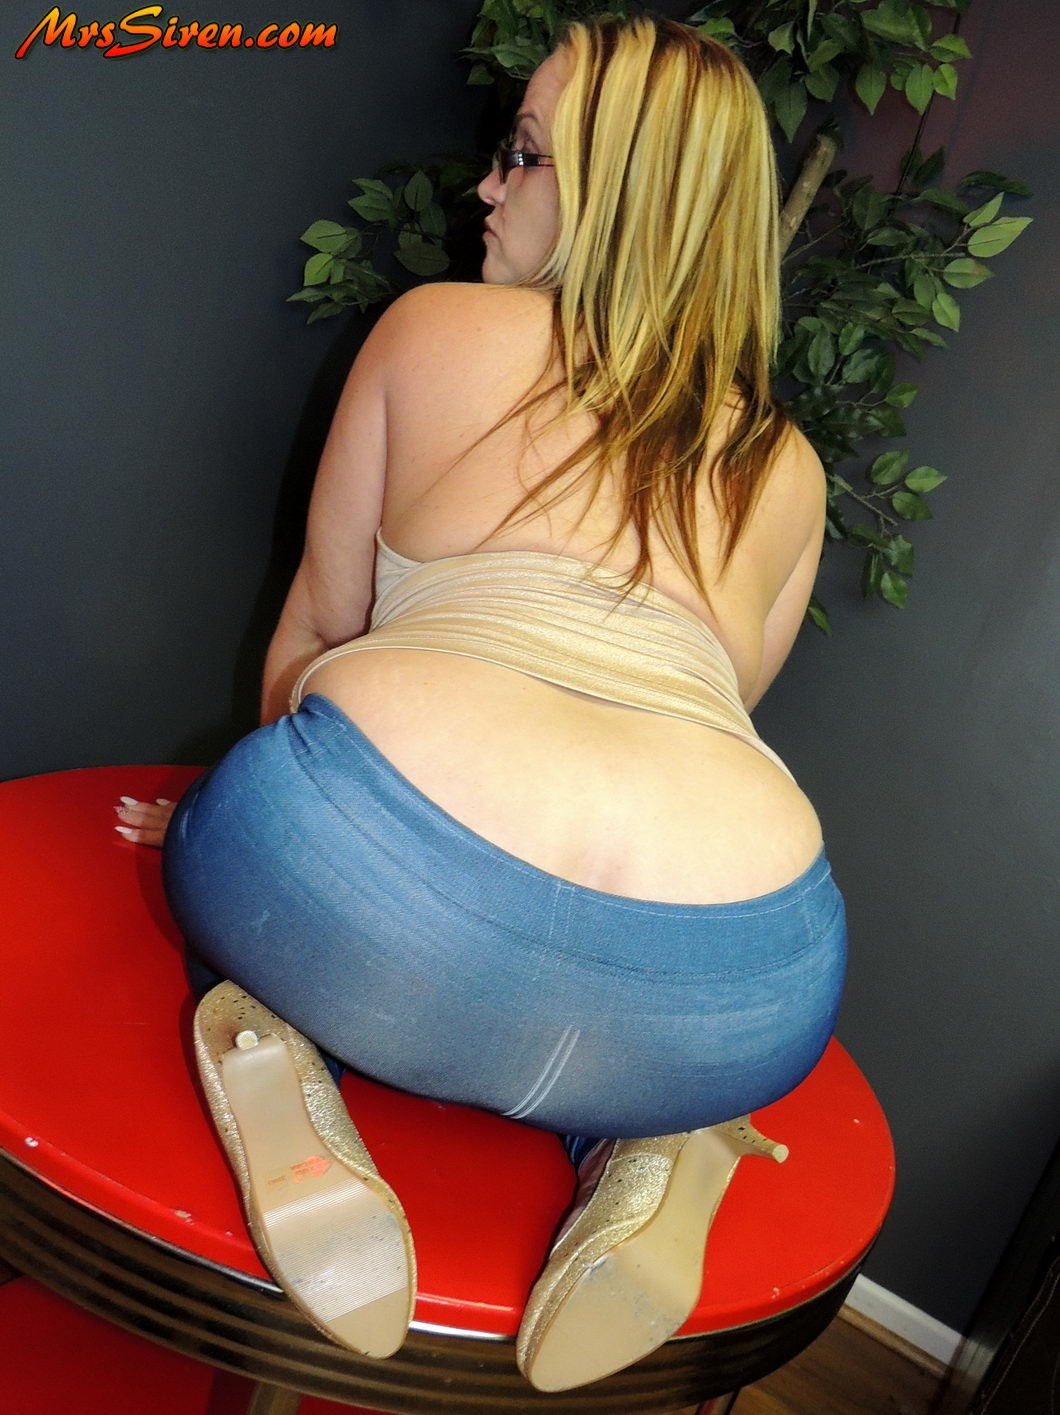 Phat asses in jeans